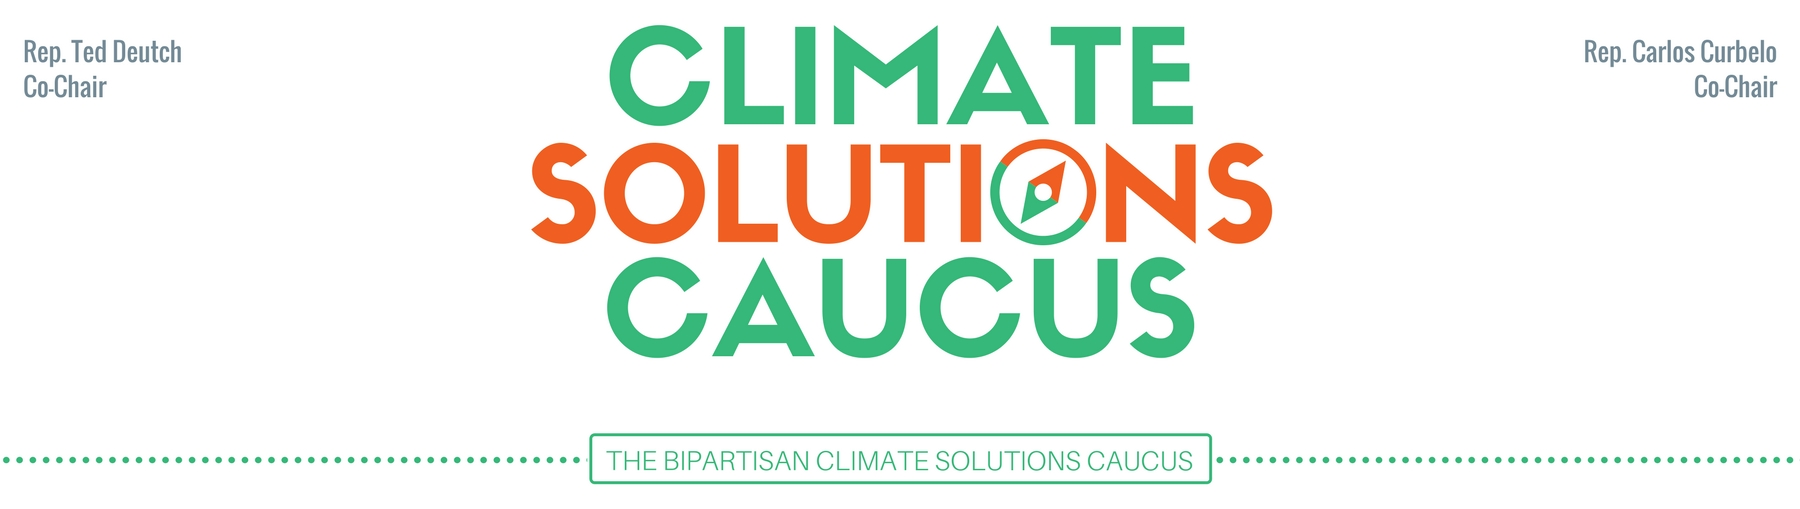 bipartisan climate solutions caucus climate change